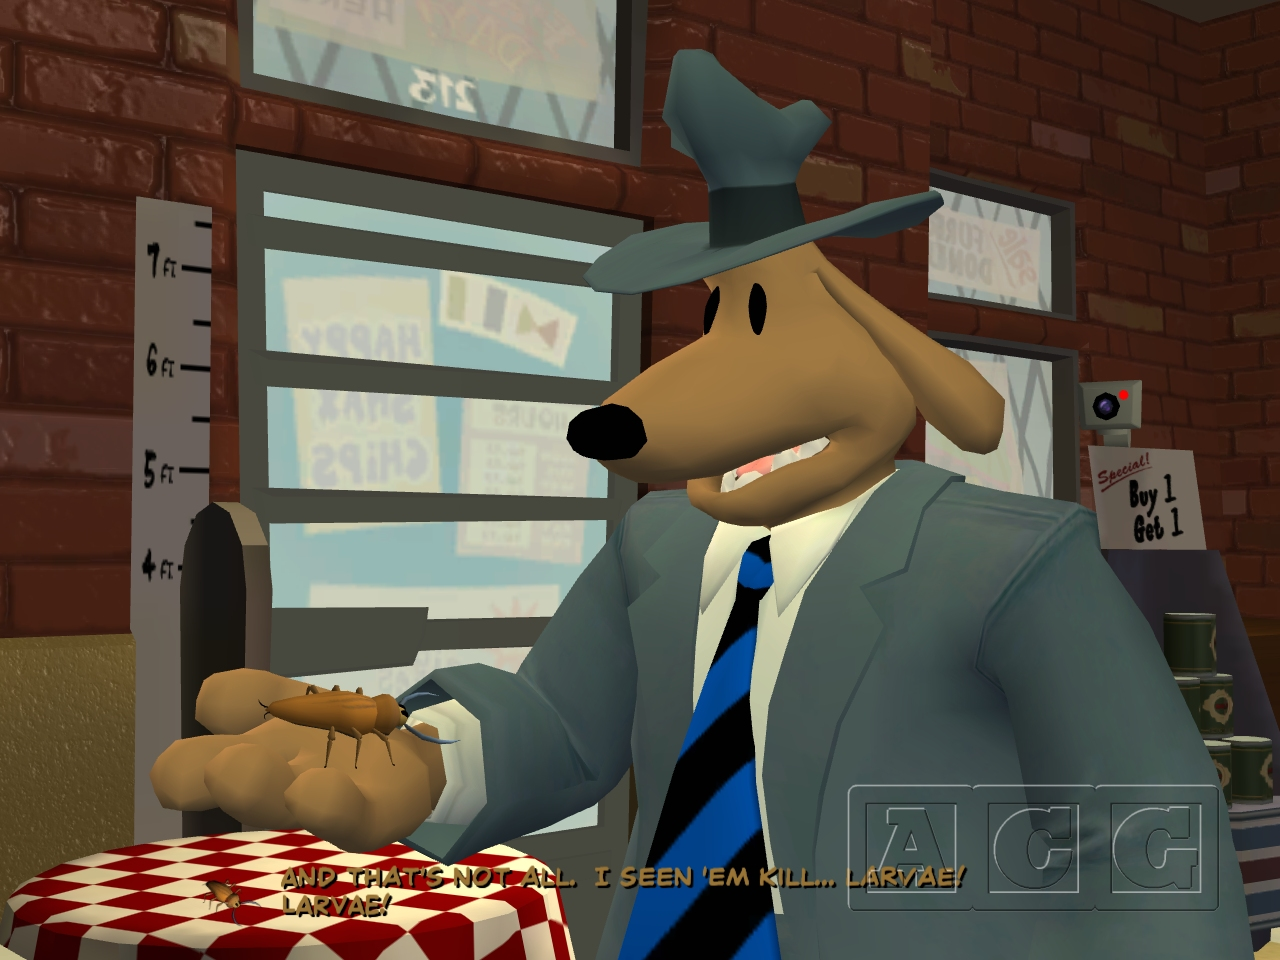 Sam & Max Save the World Episode 103: The Mole, the Mob, and the Meatball